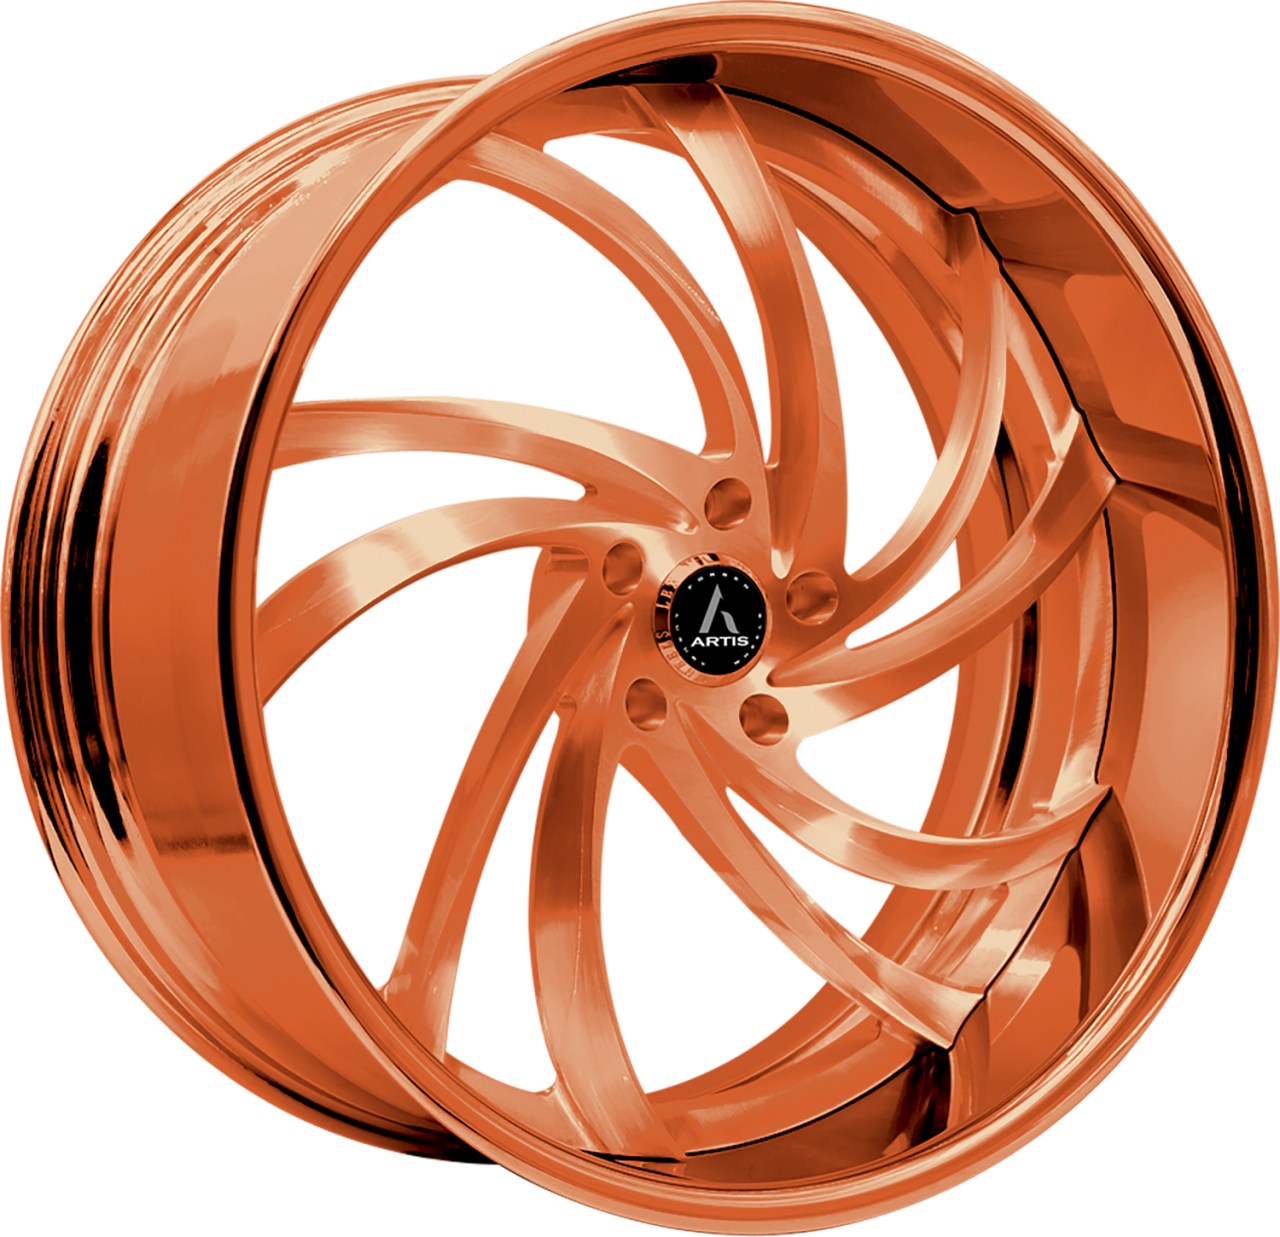 Artis Forged Twister wheel with Custom Rose Gold finish